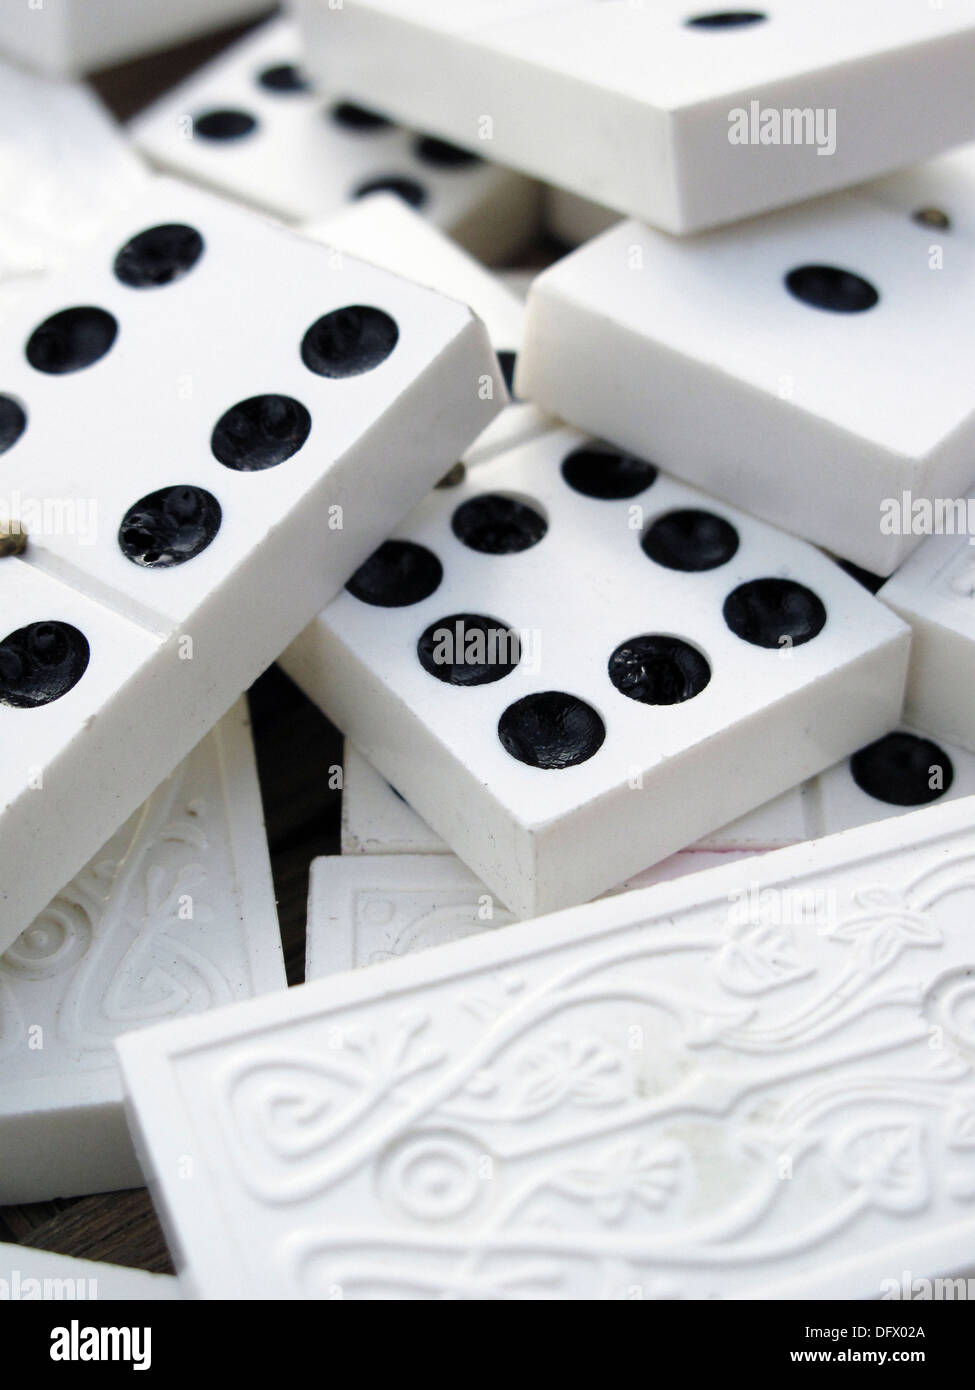 Dominos Stock Photos & Dominos Stock Images - Alamy